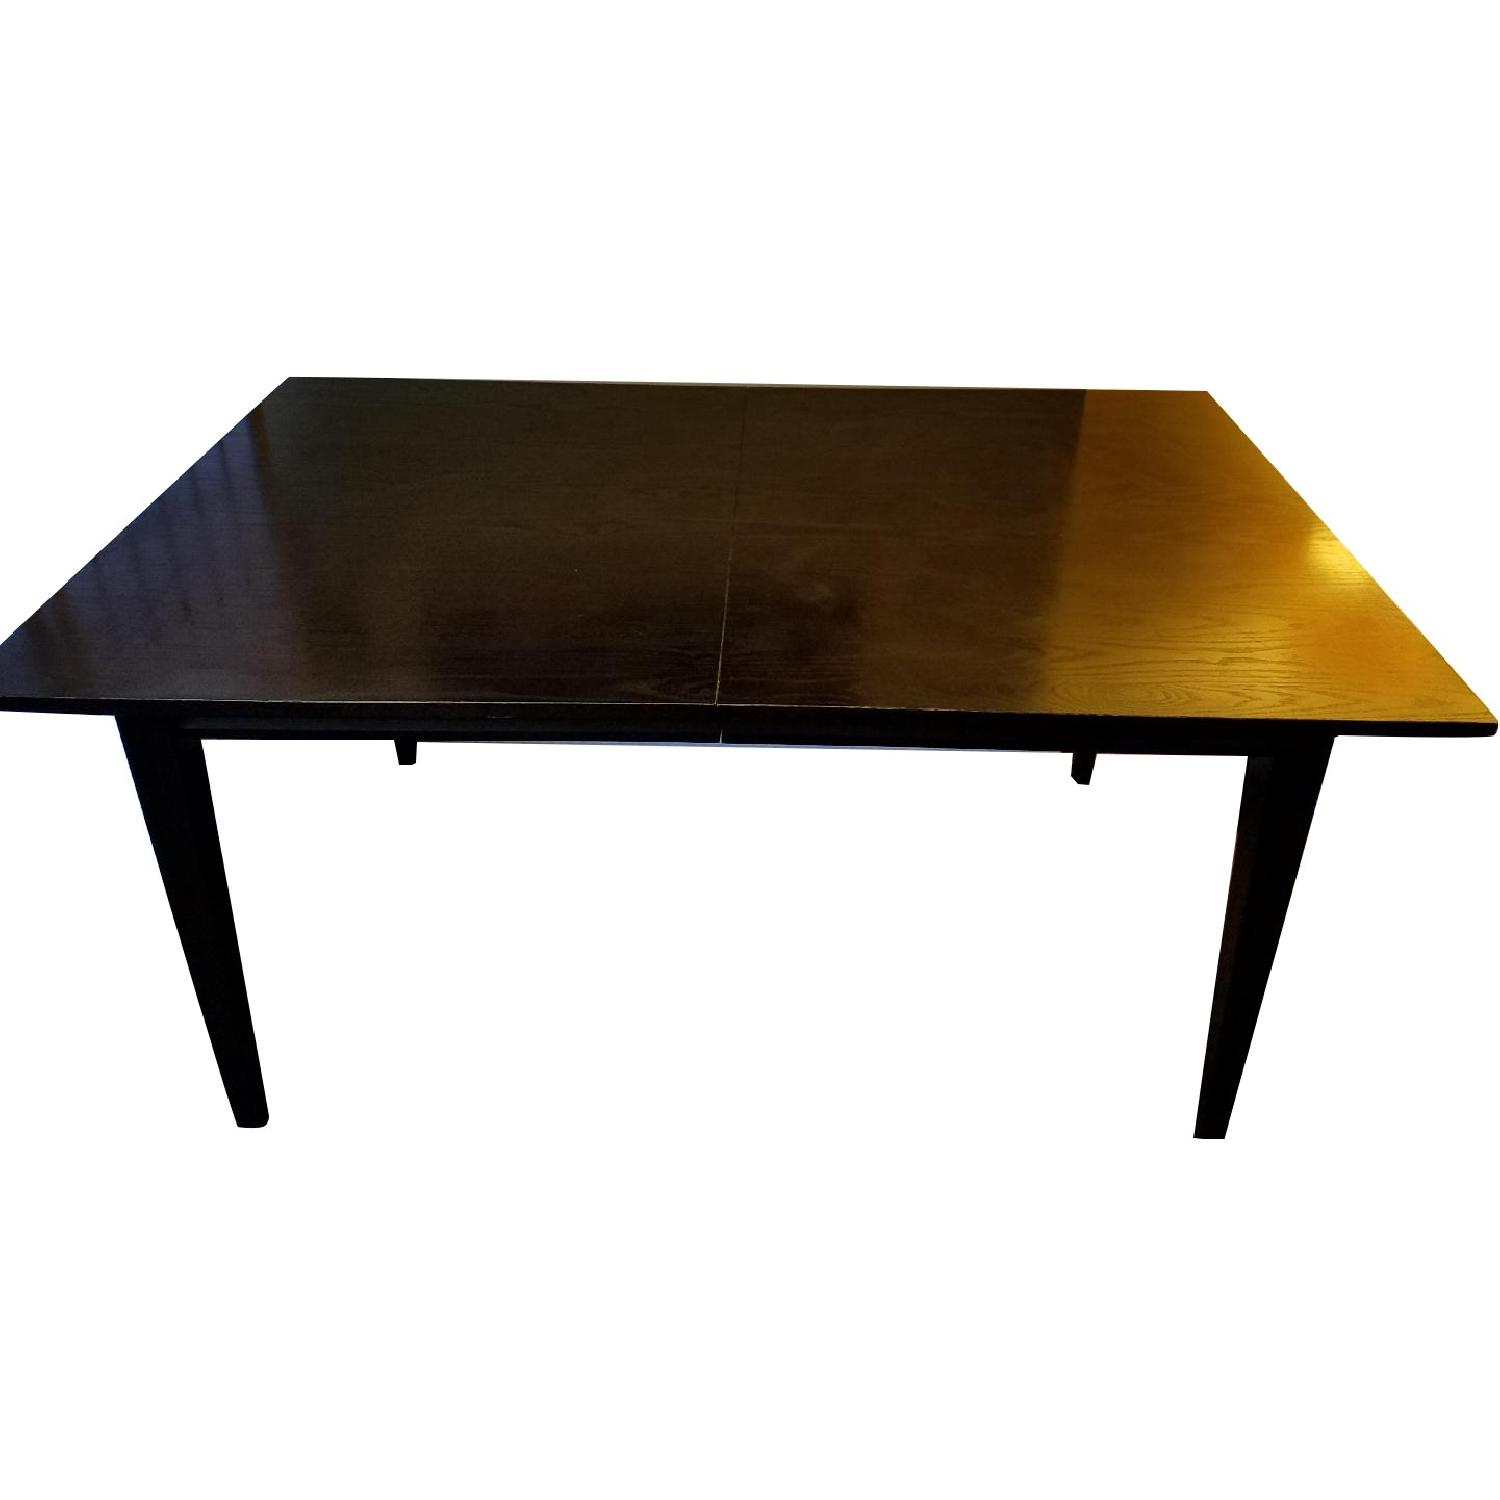 Crate & Barrel Dark Wood Dining Table